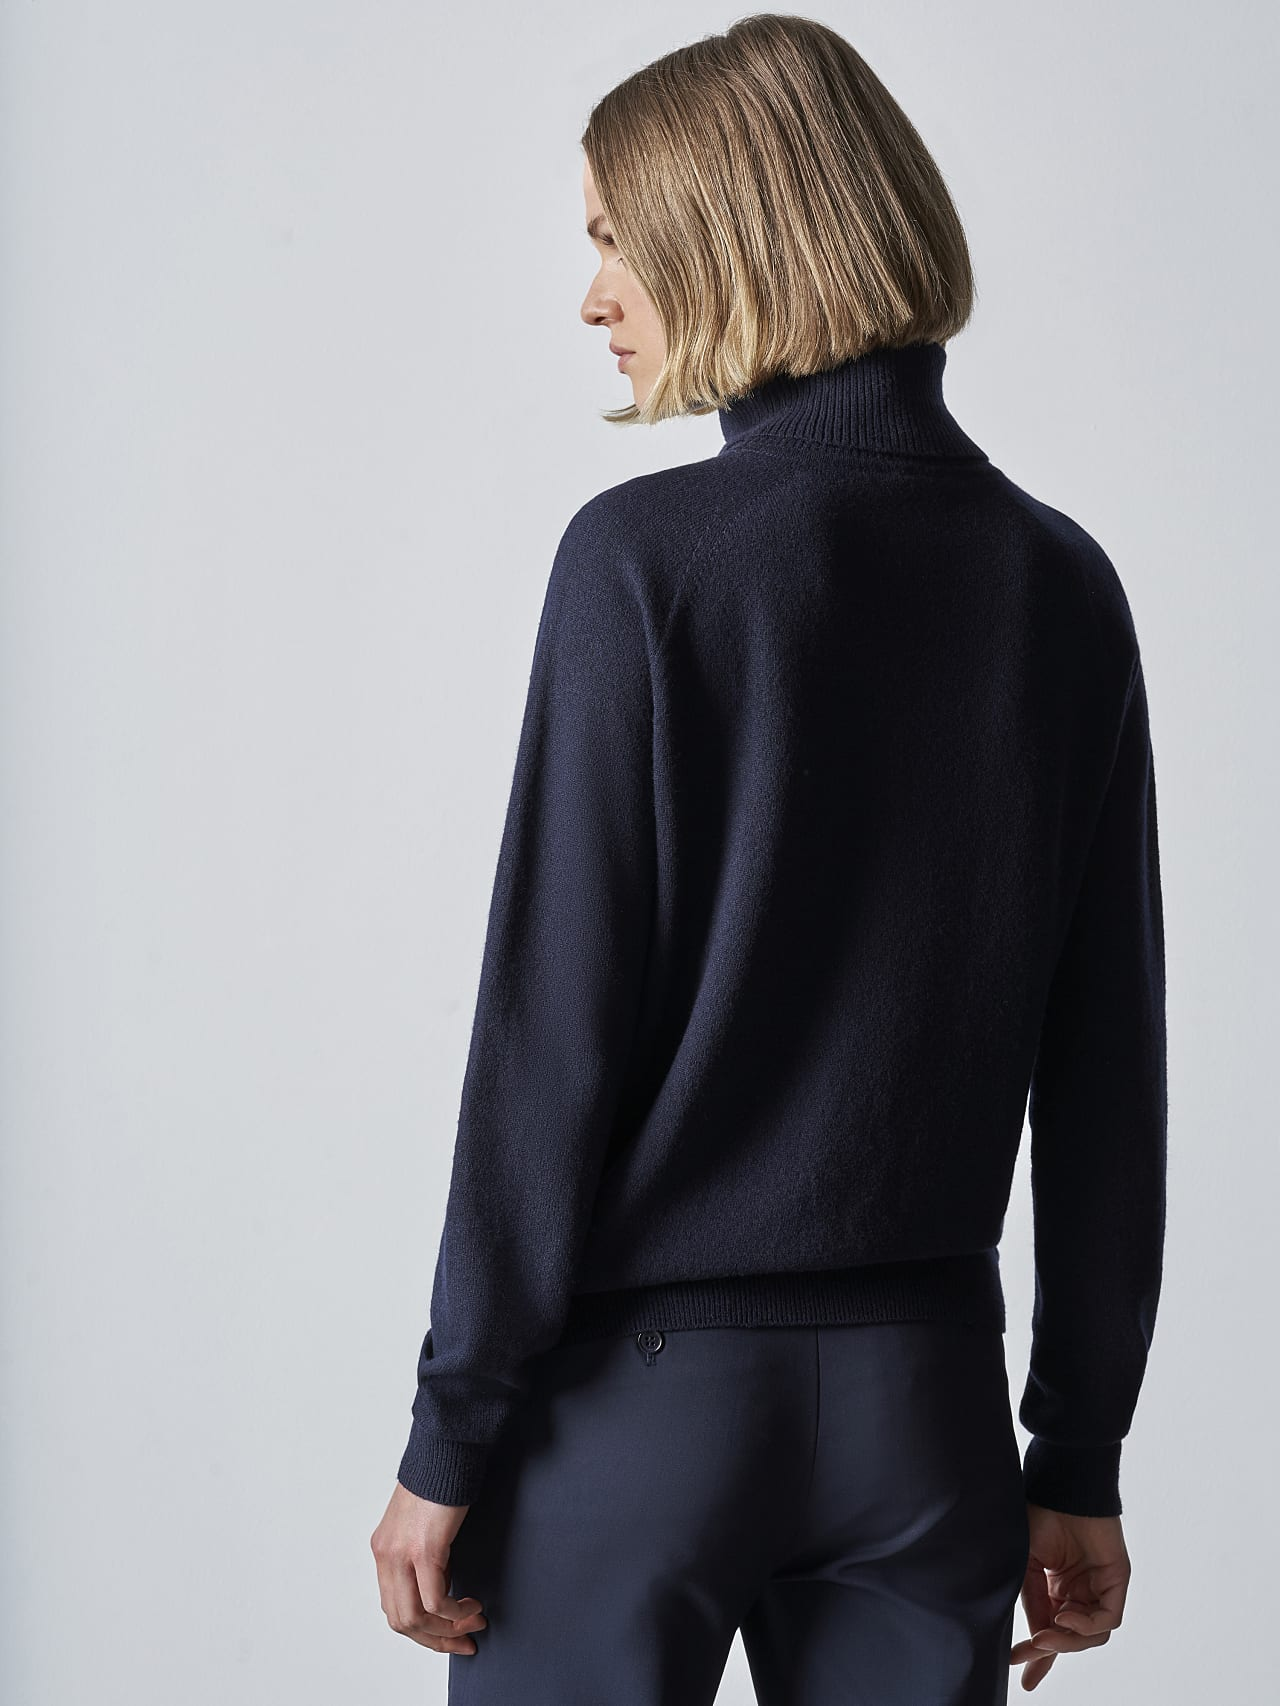 FLAMY V1.Y5.02 Seamless 3D Knit Merino-Cashmere Turtle Neck navy Front Main Alpha Tauri